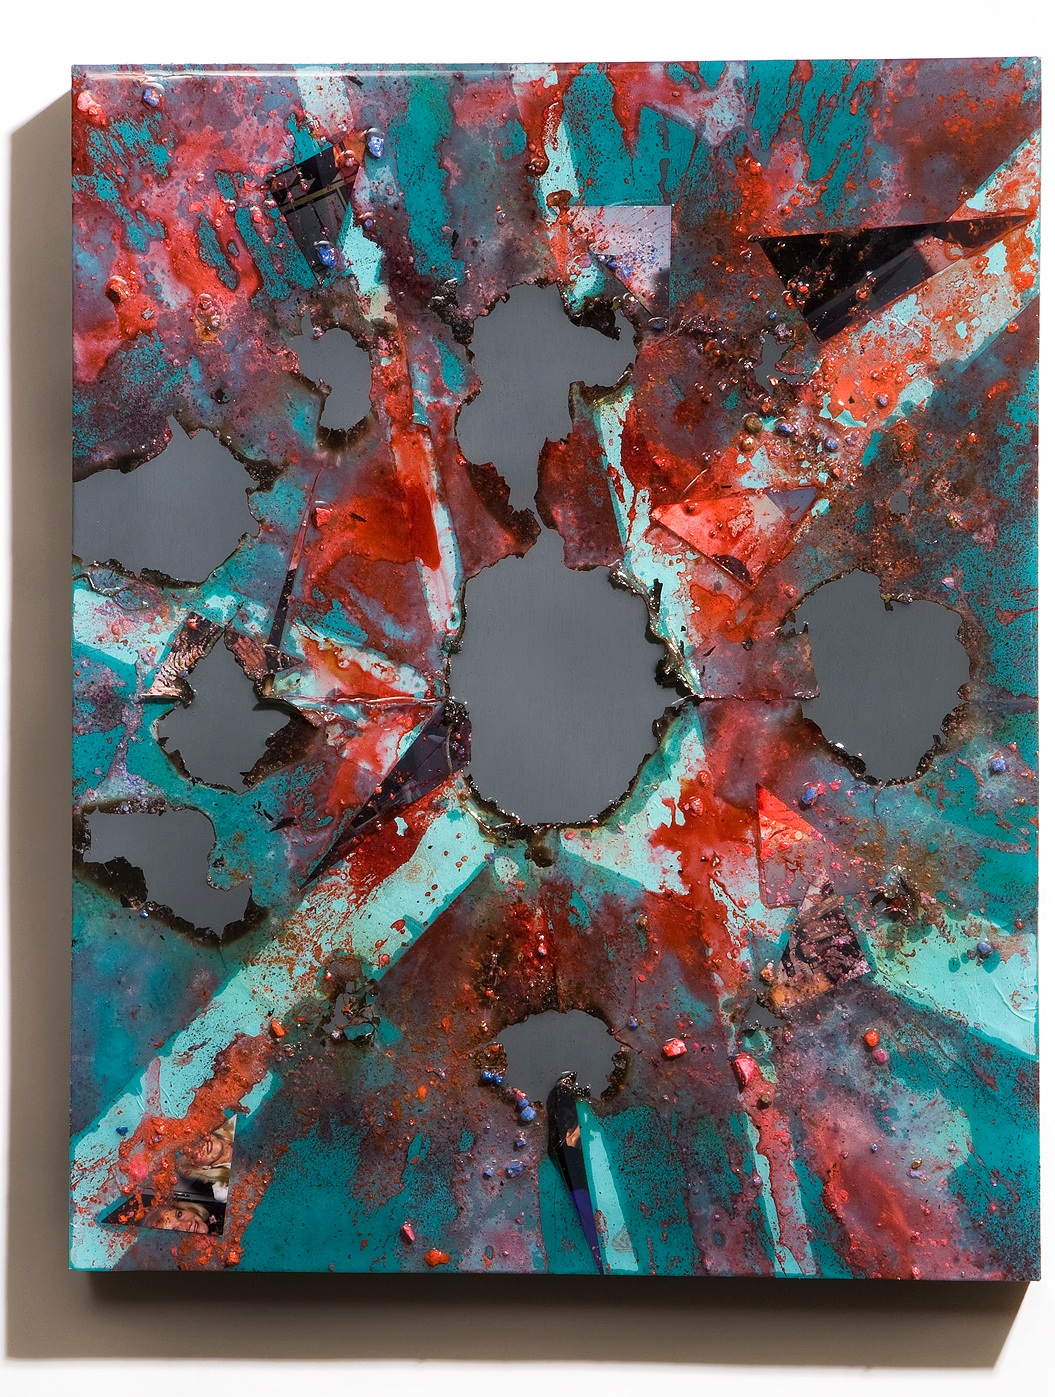 """SERIE I, Untitled (teal/grey), photographs, photo background paper, chalk, spray paint, packing tape, powder drink, glue, epoxy resin on wood panel, 16""""x20""""x2"""", 2019"""